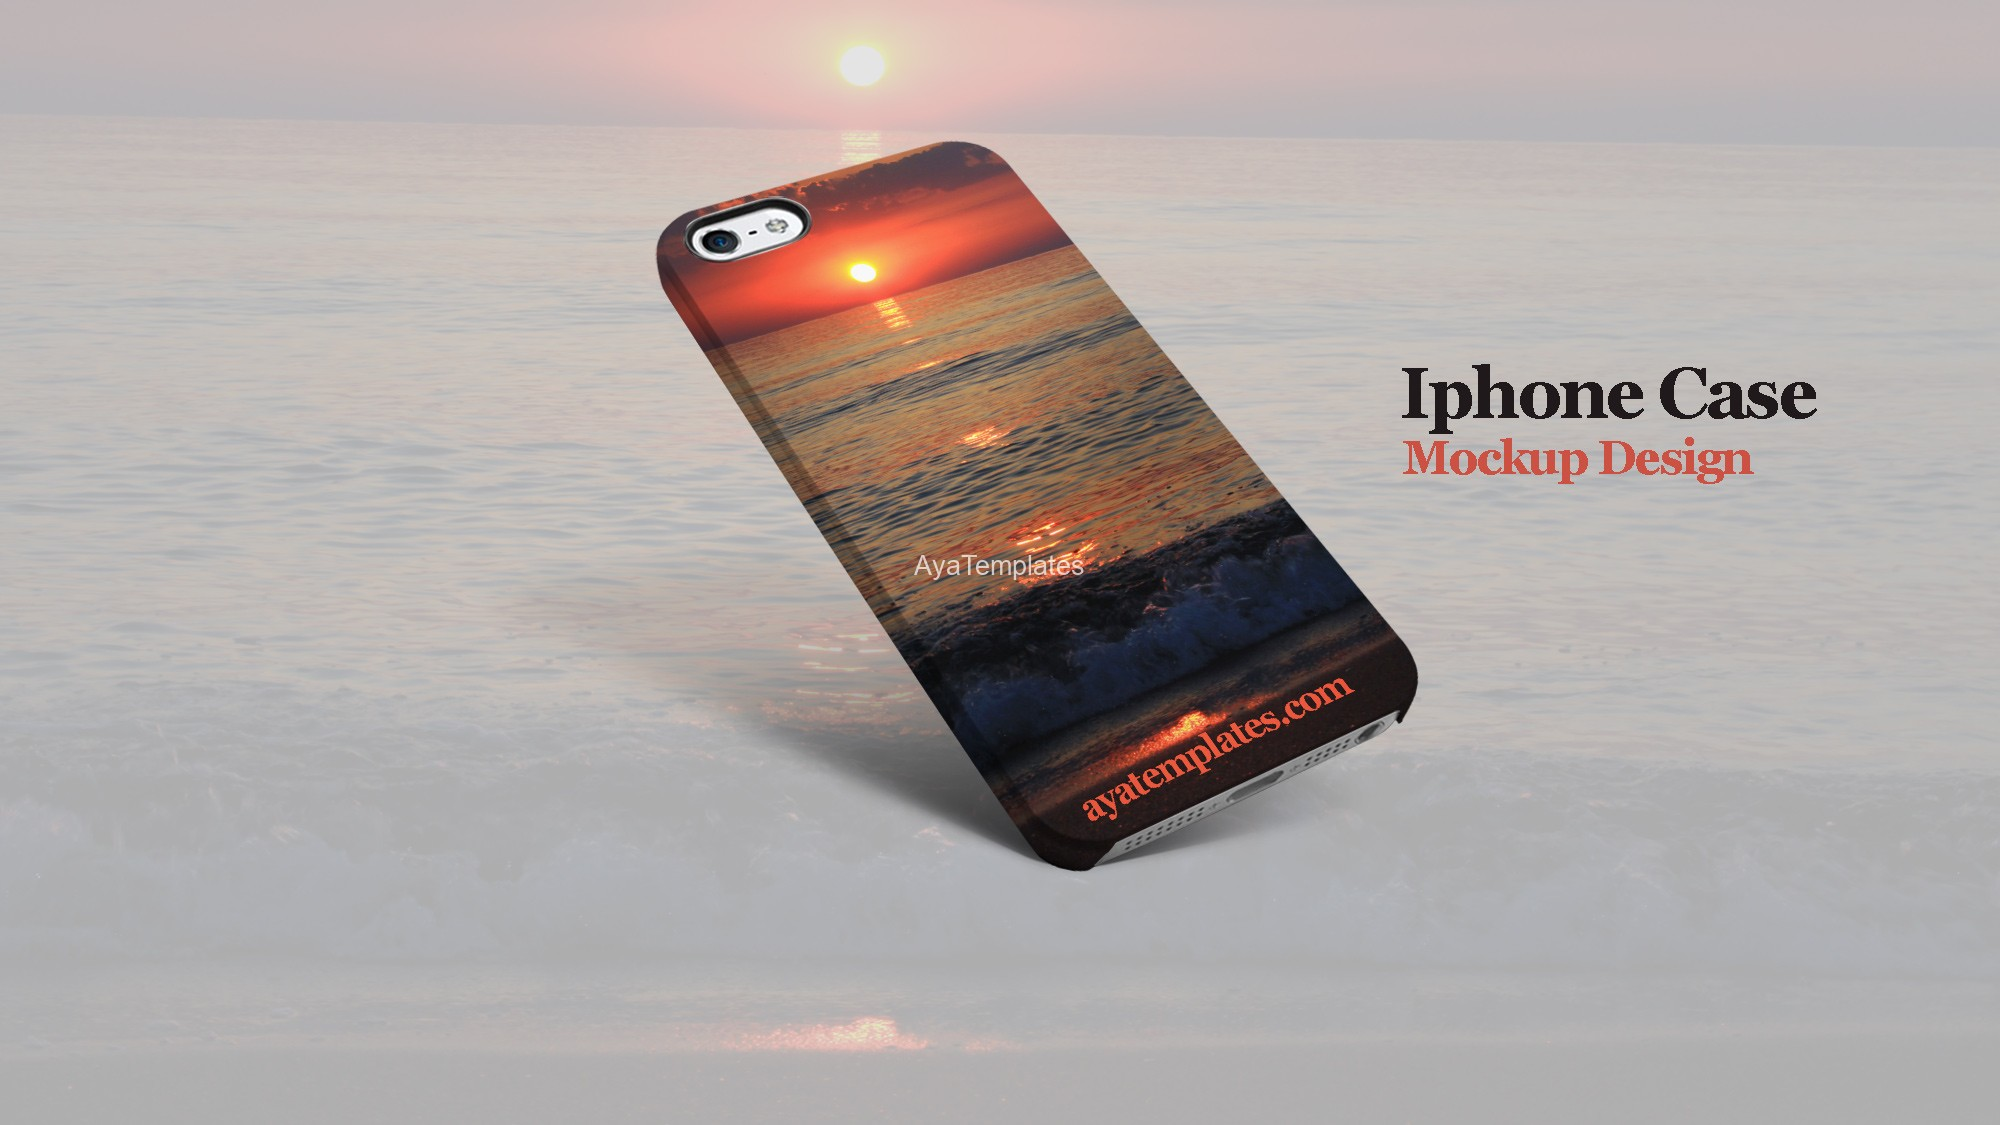 iphone case mockup design 2 aya templates